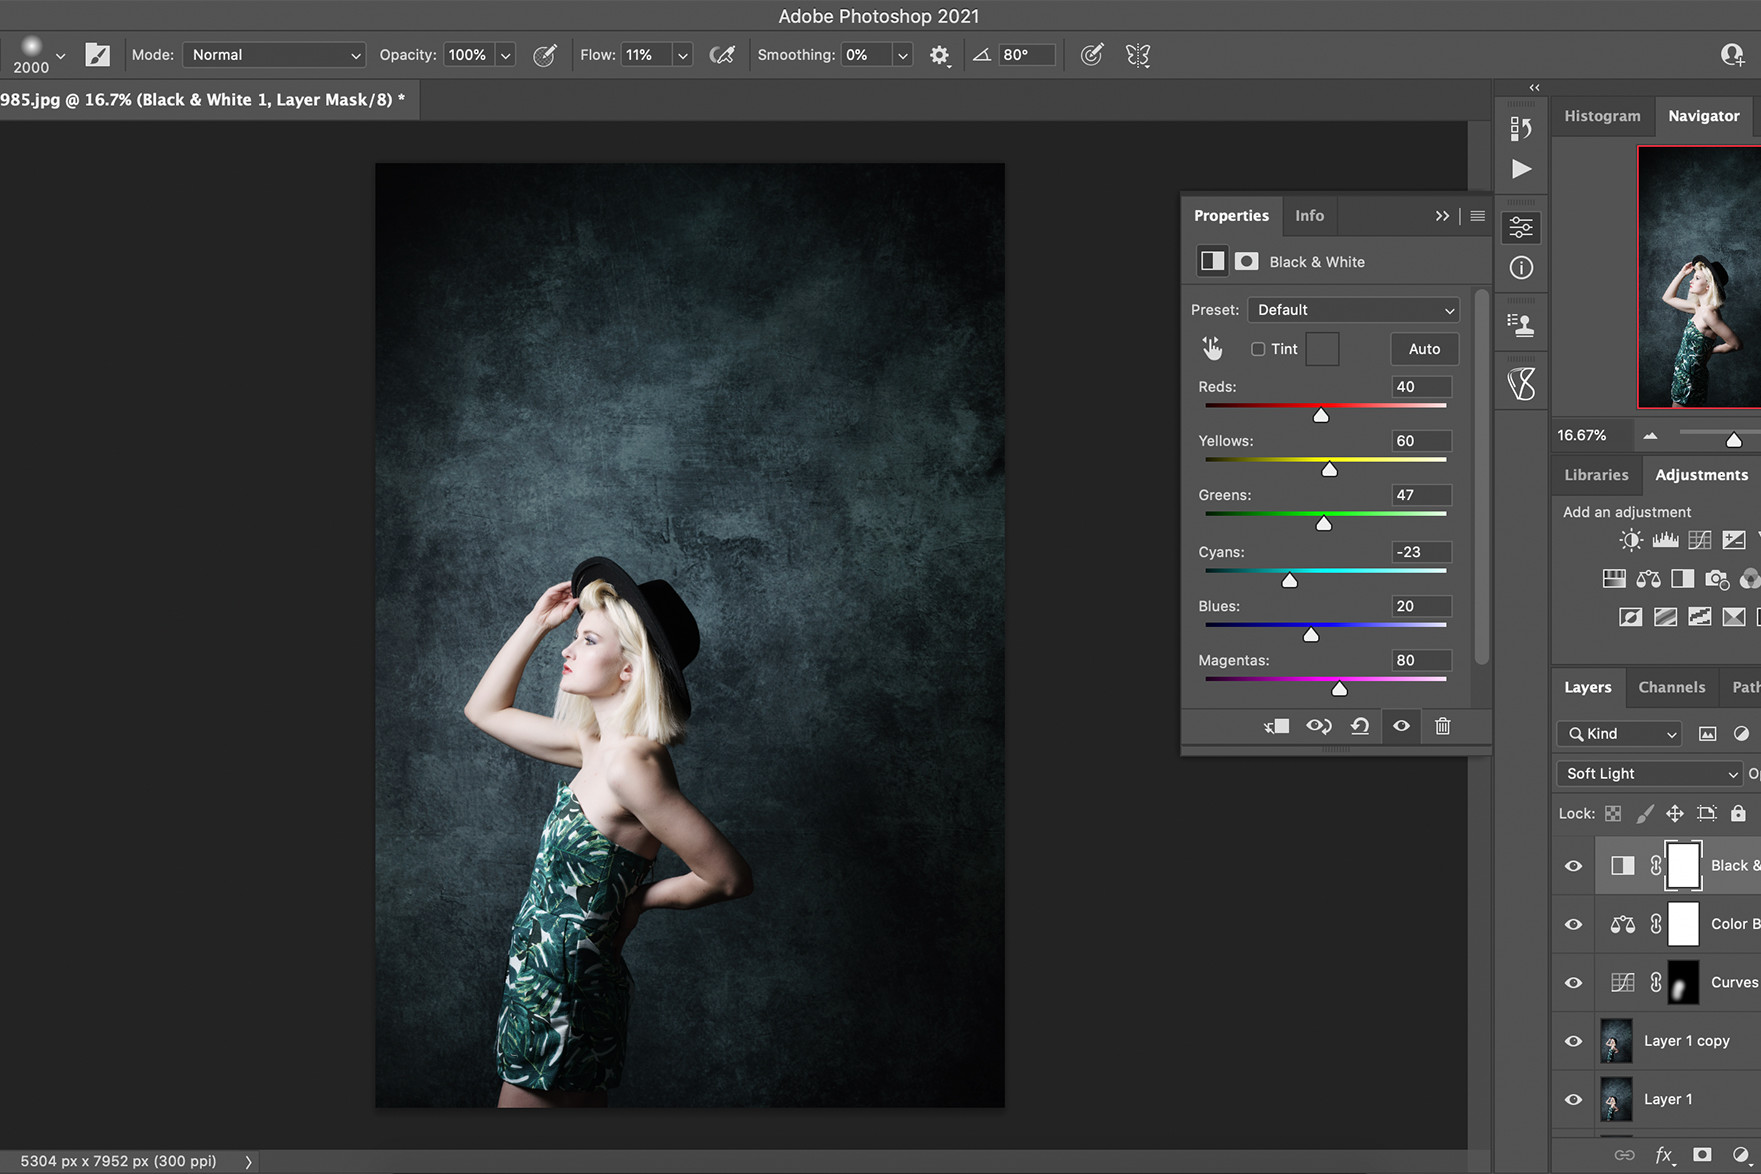 screenshot of photographic portrait being edited